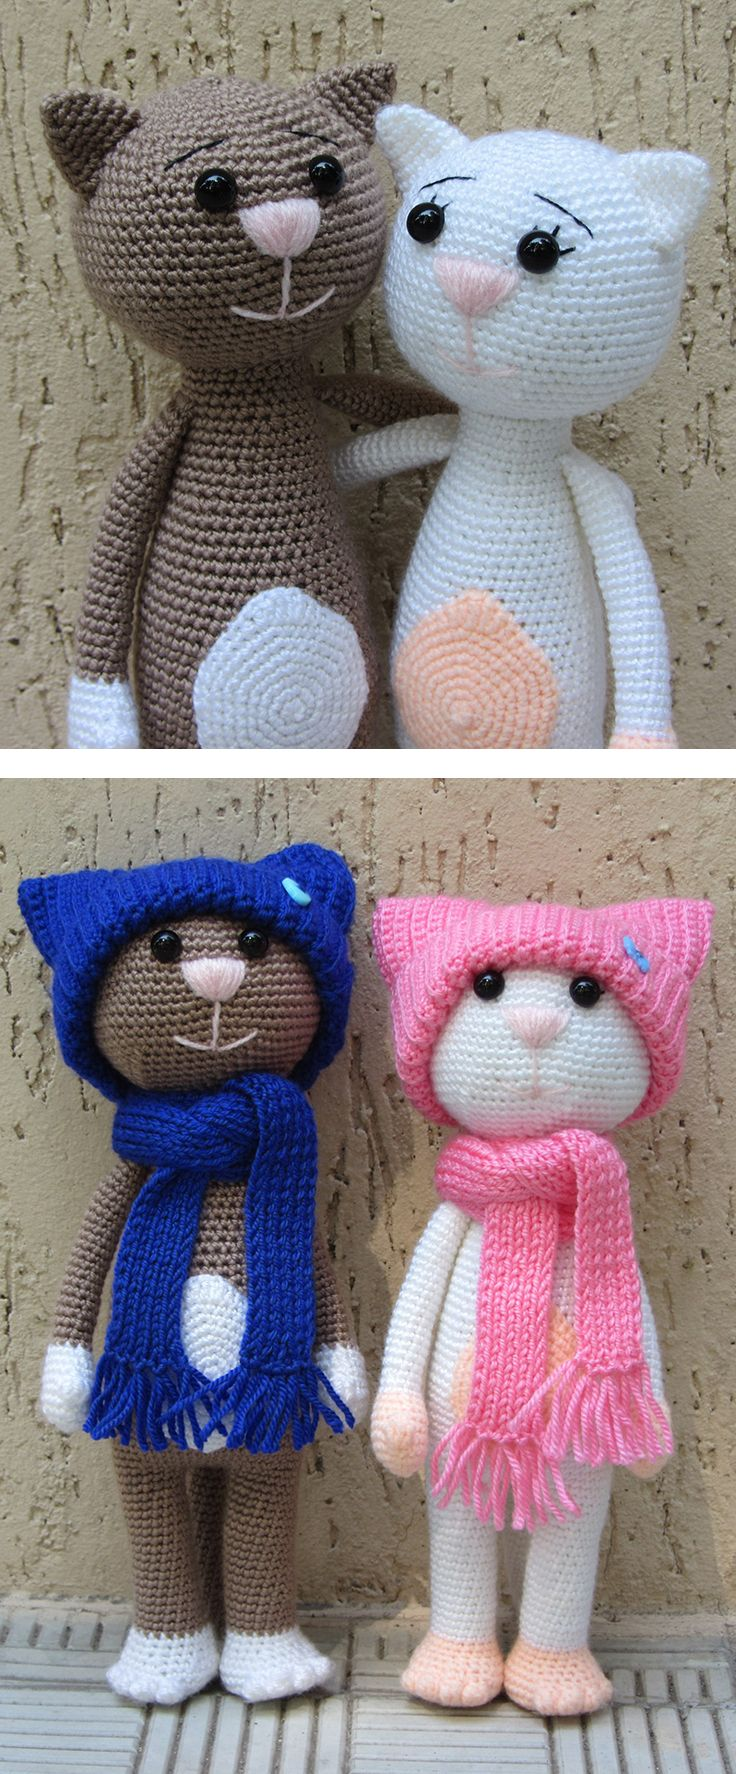 Crochet cat will be a good present for cat-lovers. Make somebody's day with this wonderful handmade gift!